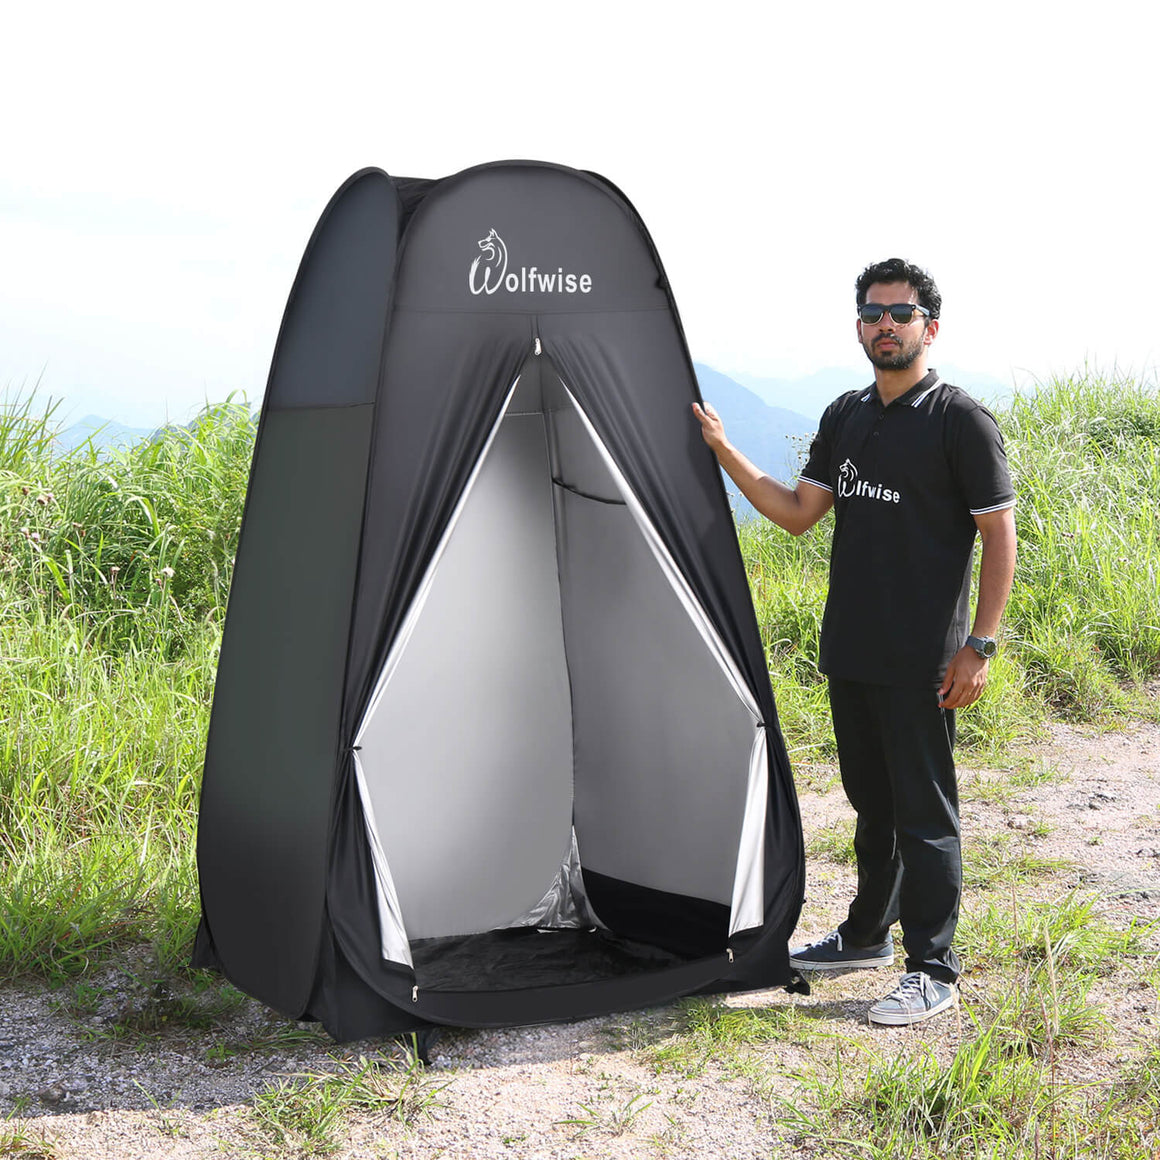 Wolfwise PopUp Privacy Tent